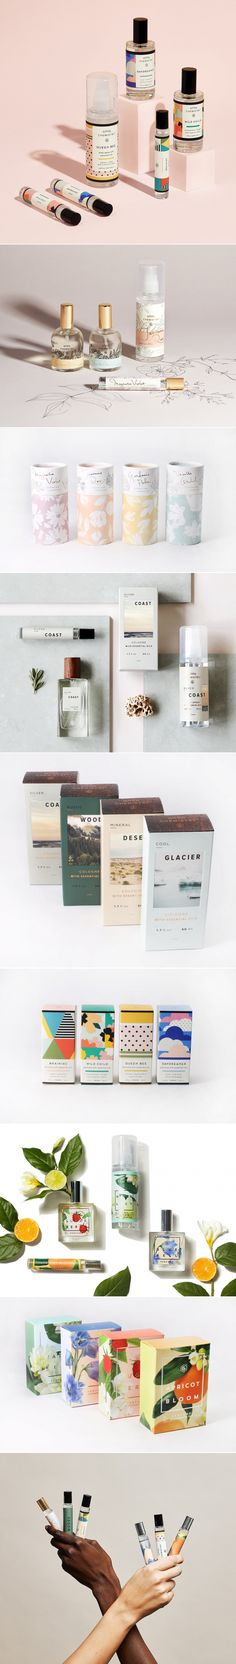 Good Chemistry: Match Your Fragrance to Your Vibe — The Dieline | Packaging & Branding Design & Innovation News